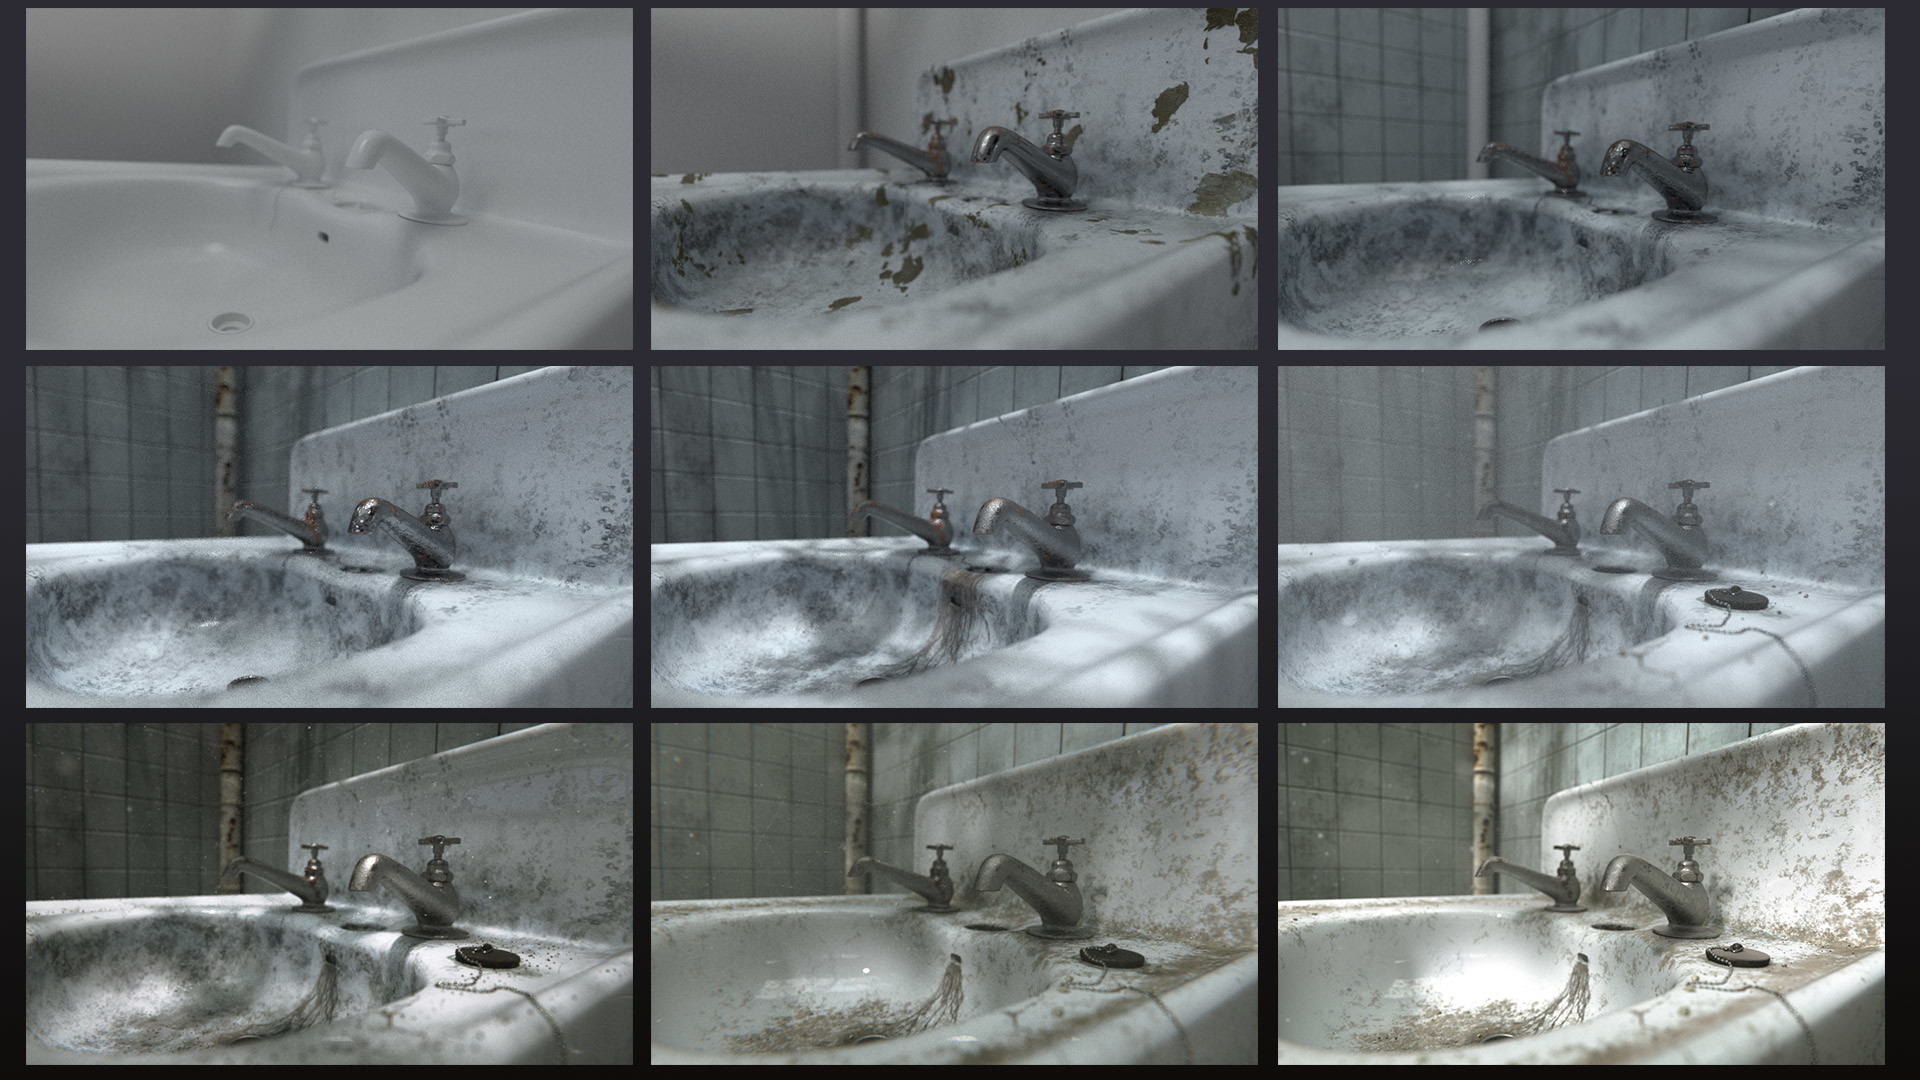 Antoine le corre sink making of 01